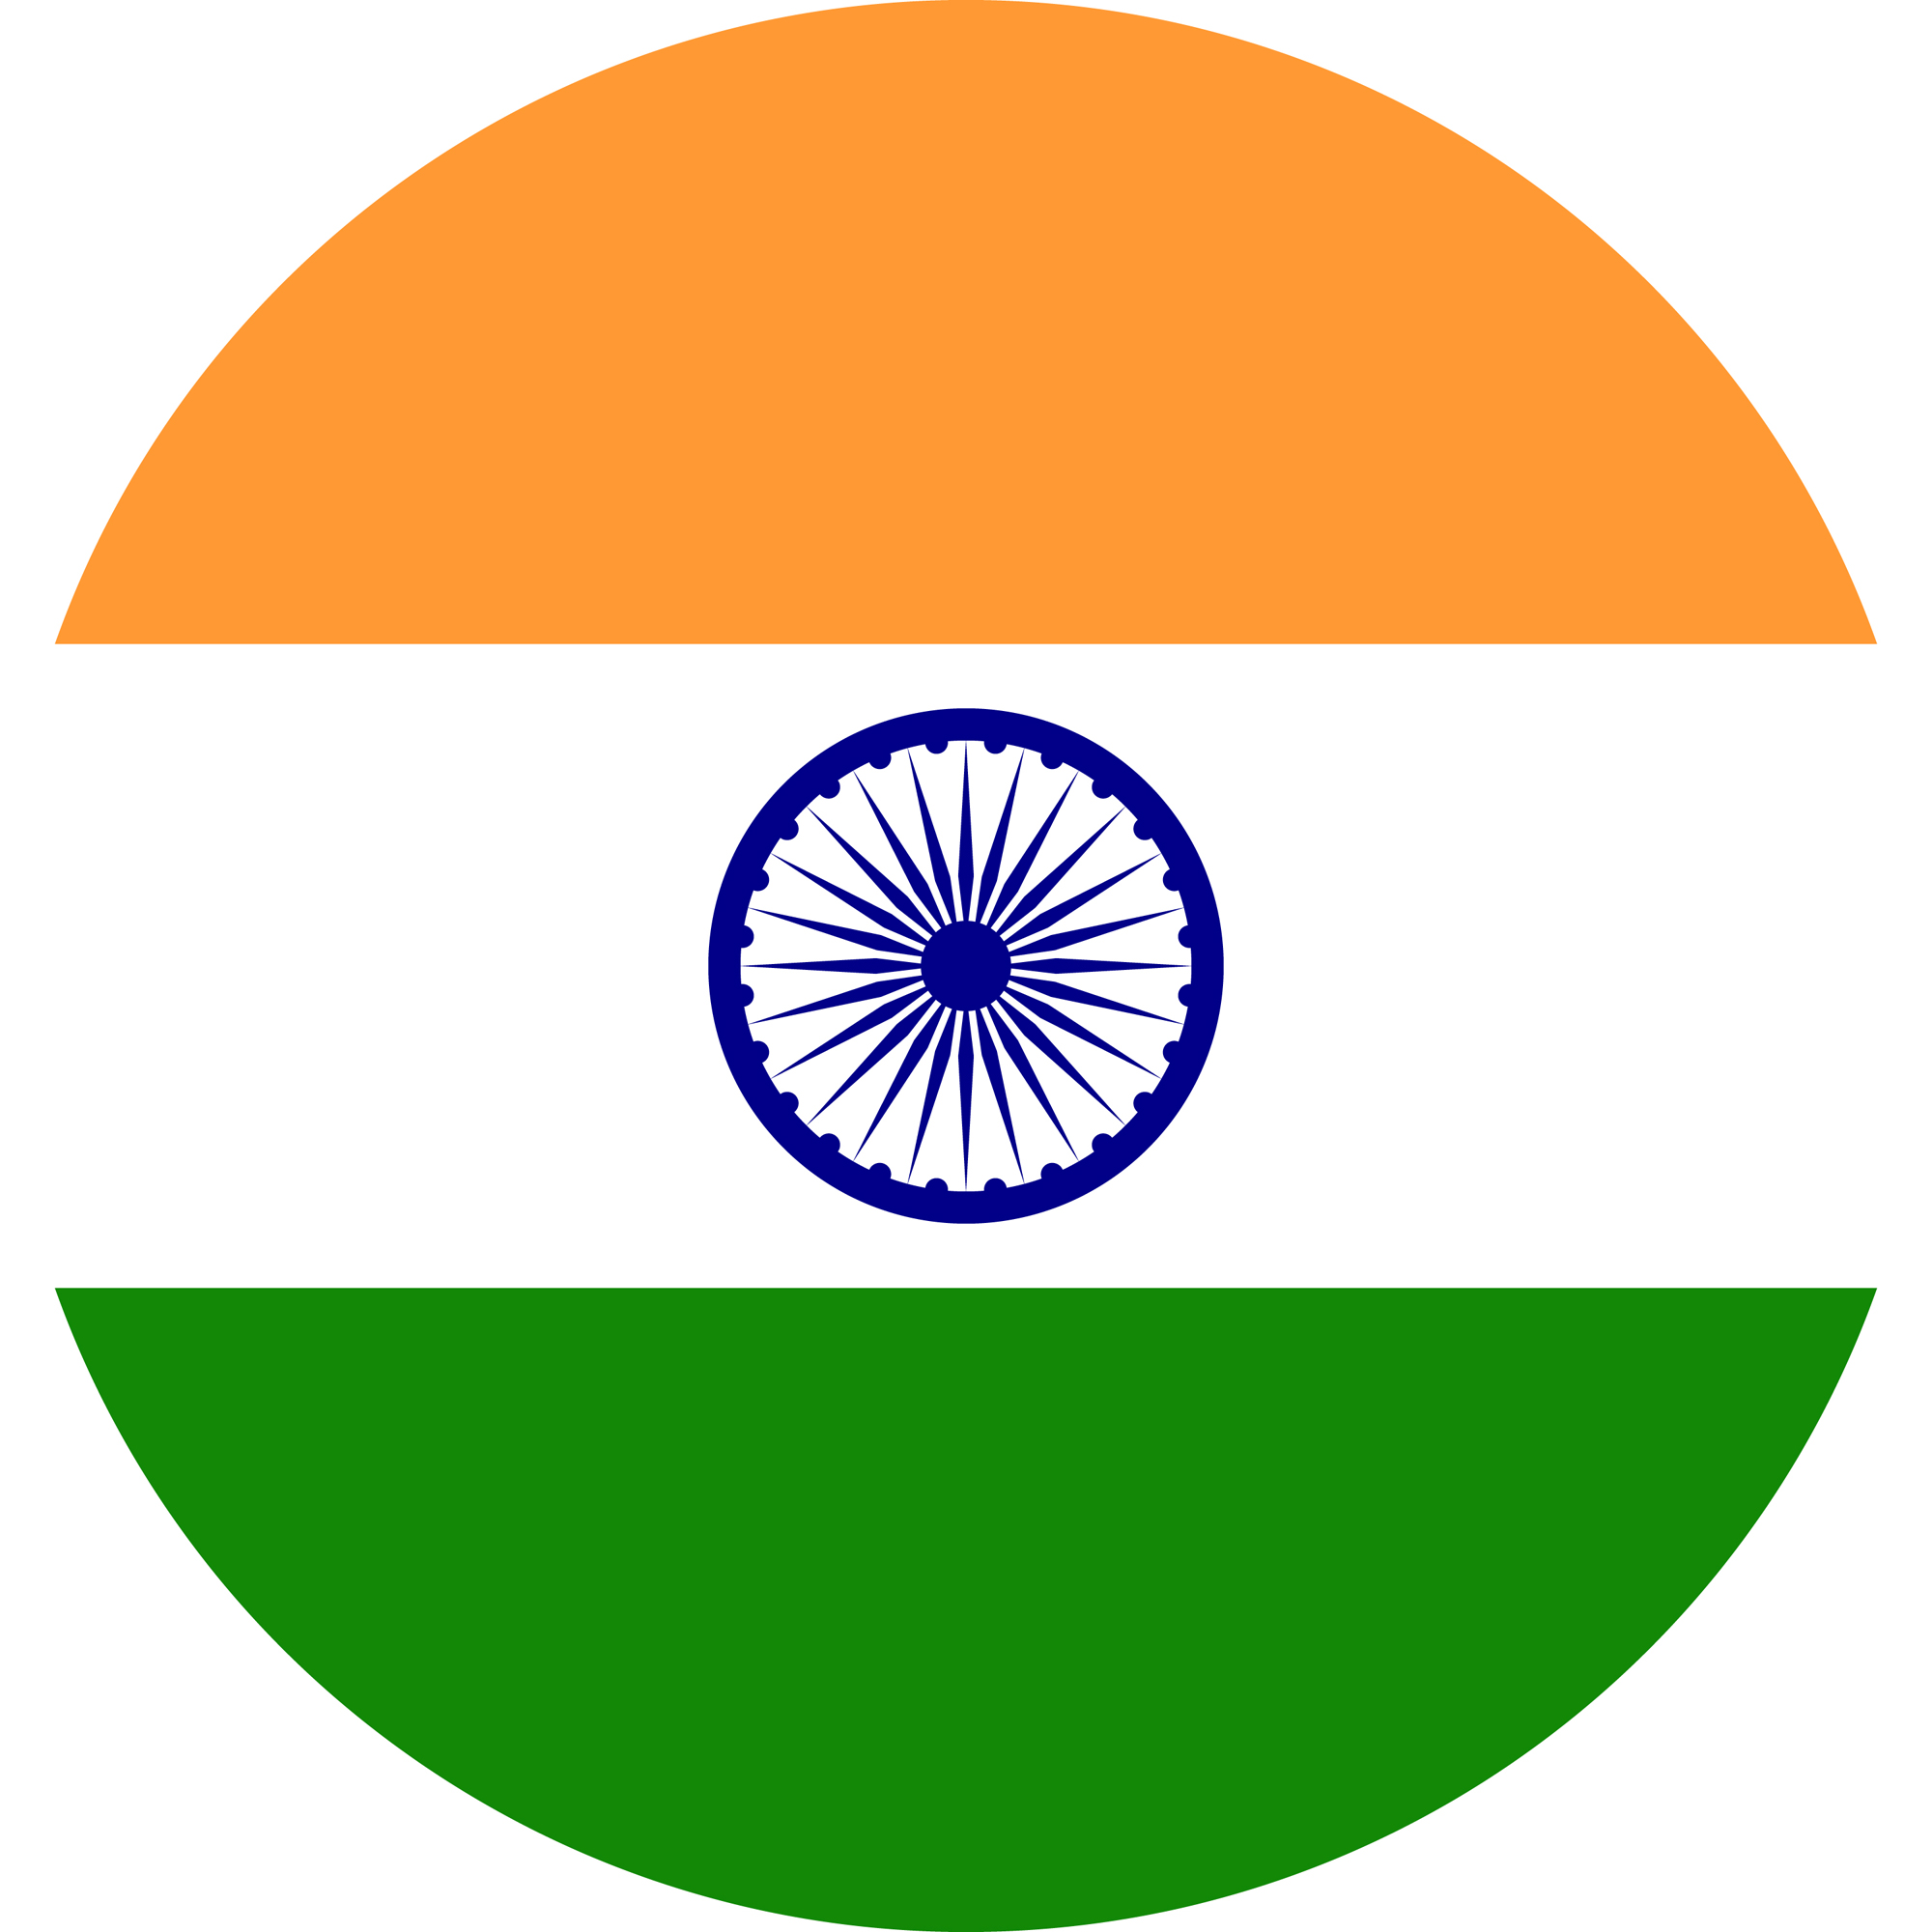 India CleanUp - Held Annually on the Third Saturday in September